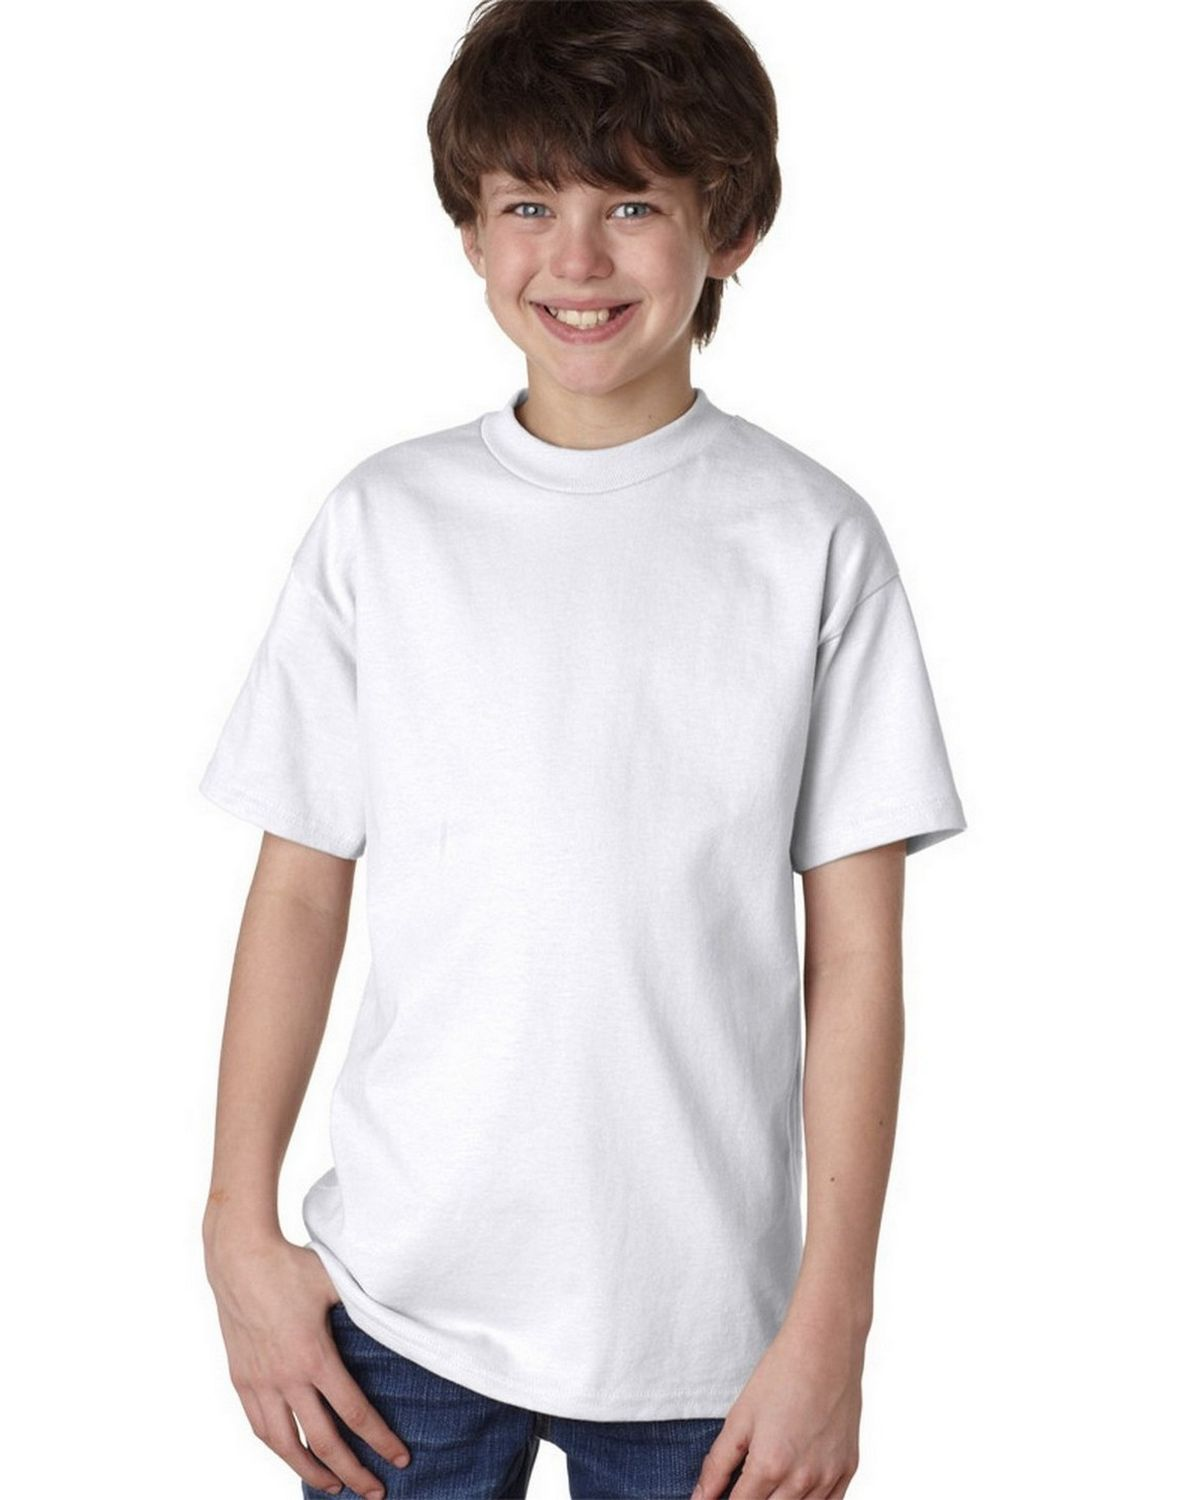 Hanes 5450 100% Youth Cotton Comfort Tee - White - S 5450